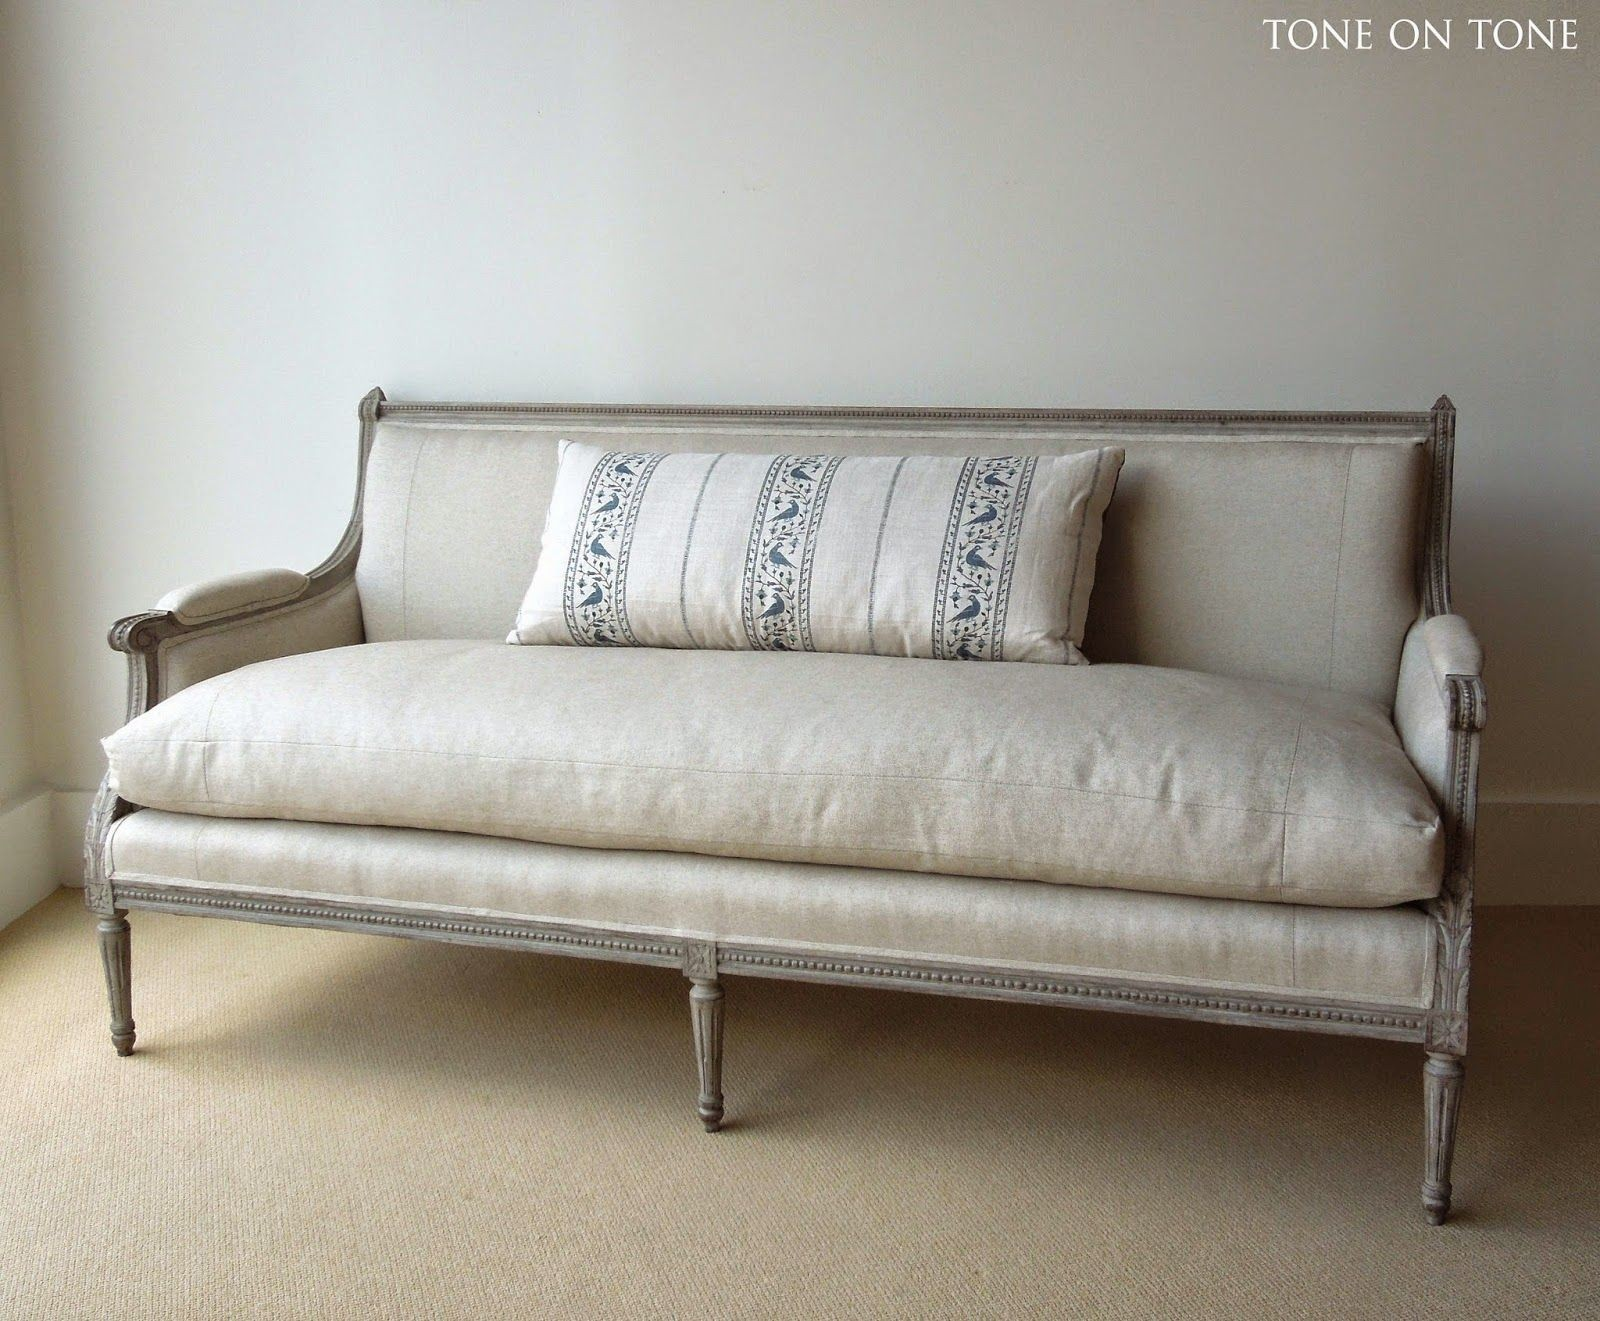 Down Filled sofa Beautiful Antique sofa Recovered In Linen with Down Filled Cushion Plan